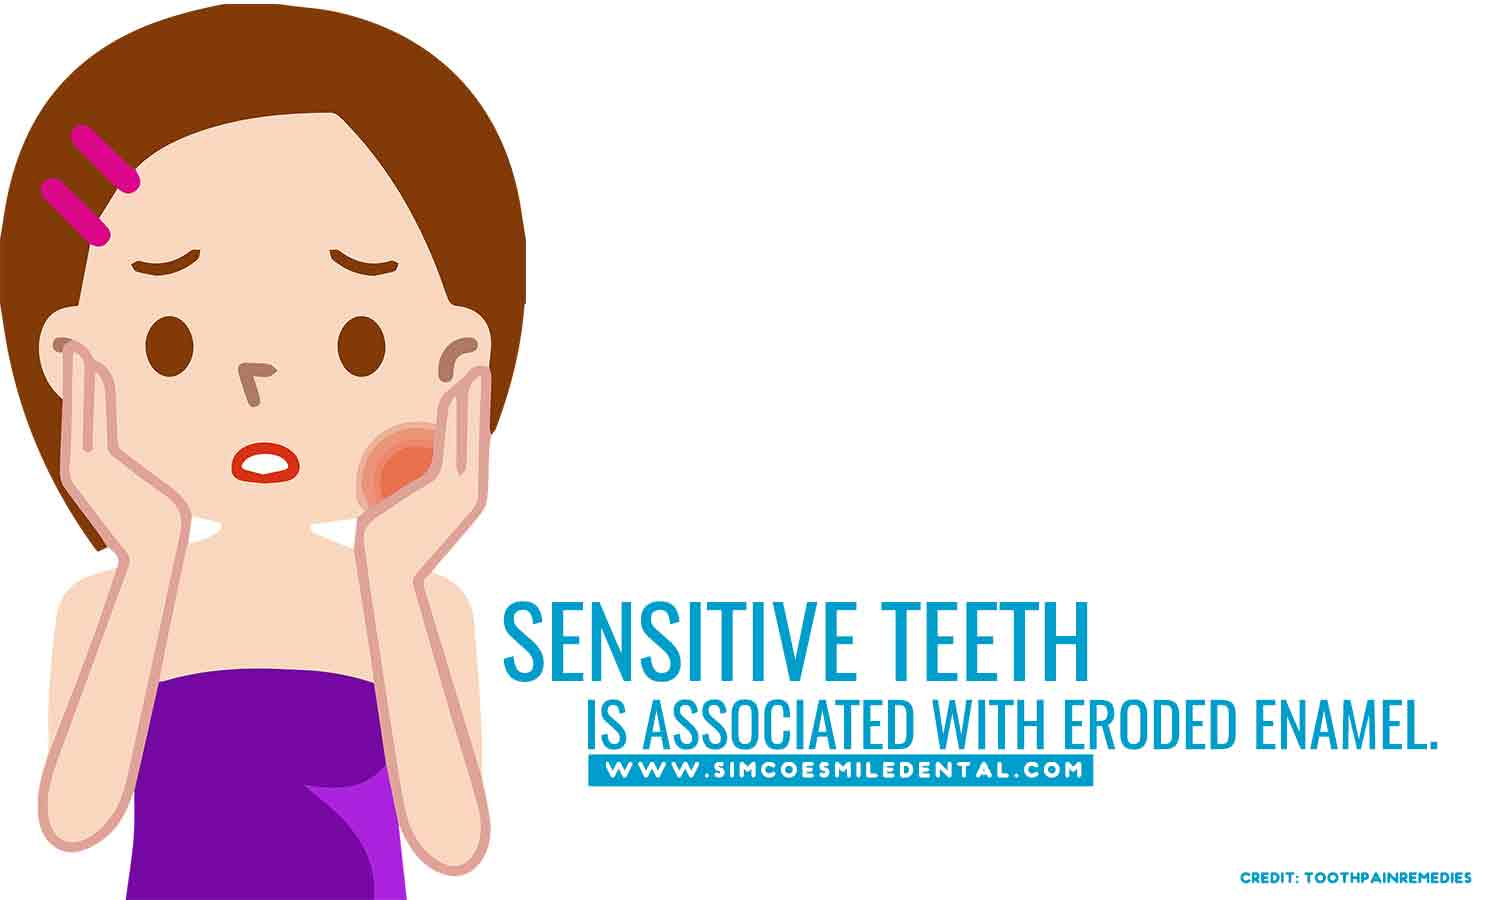 Sensitive-teeth-is-associated-with-eroded-enamel Overbrushing And Its Effects On Your Teeth